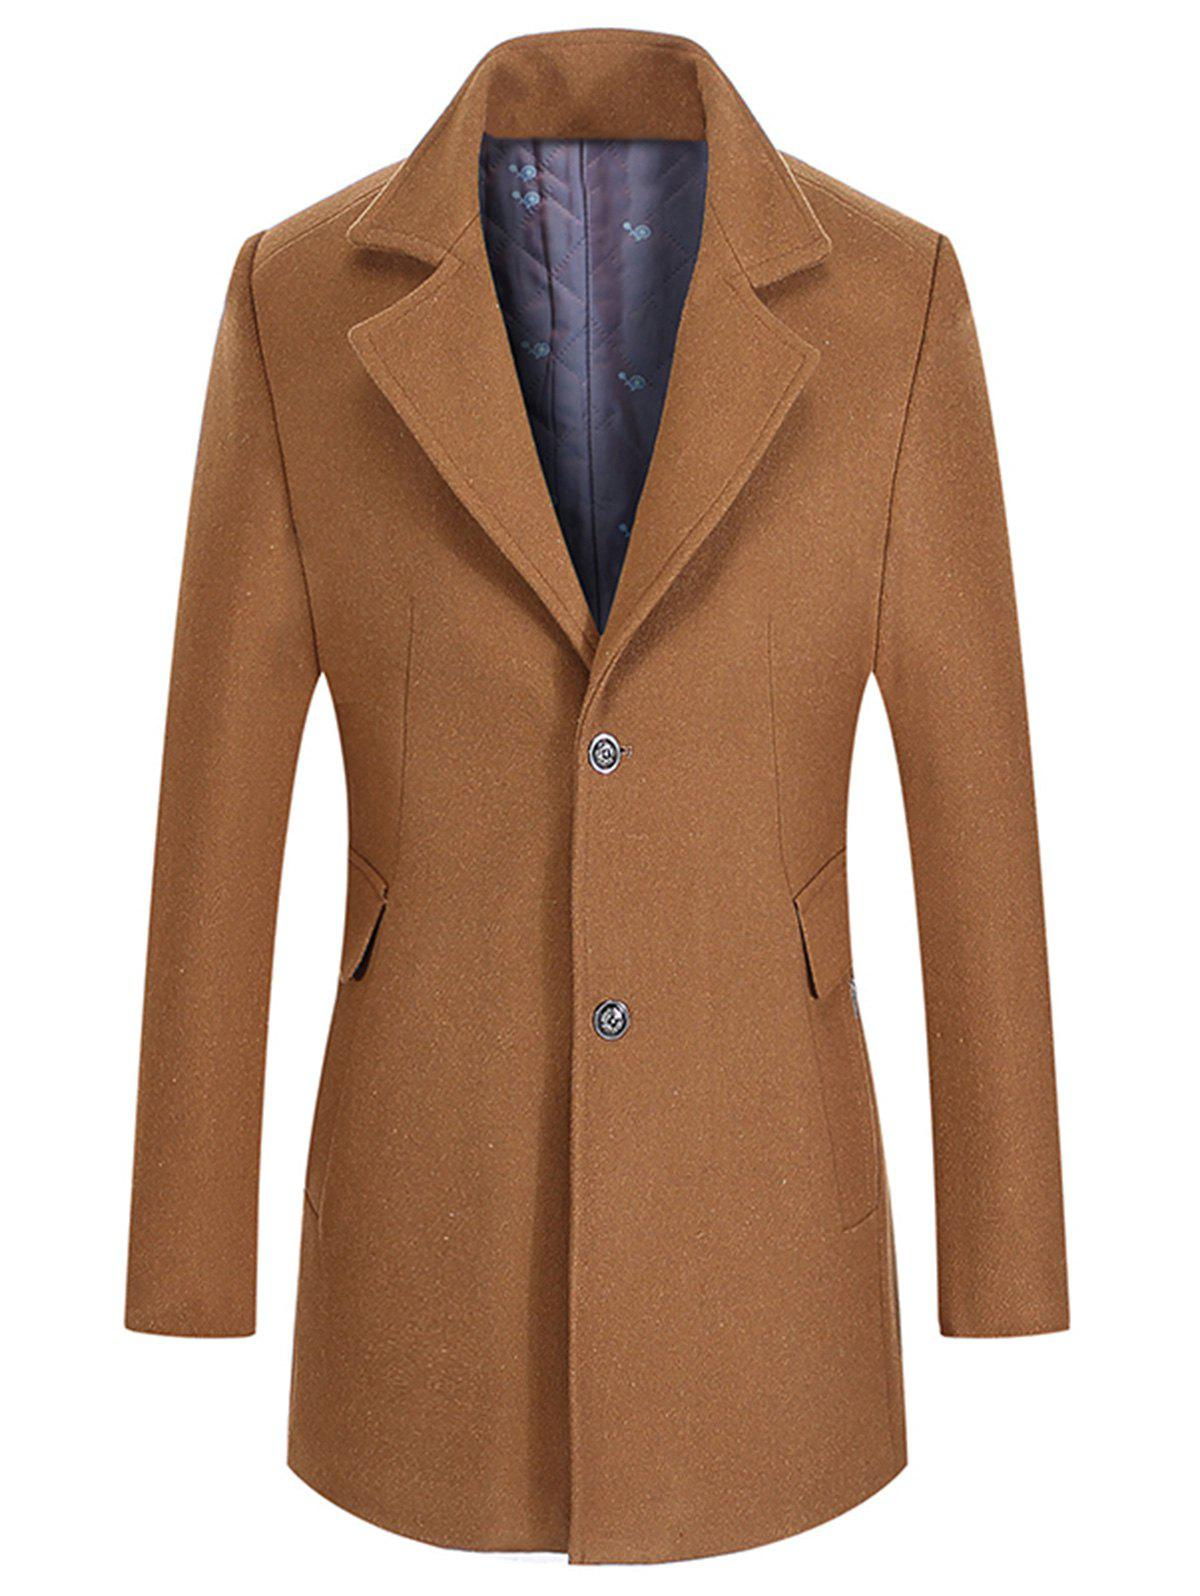 Wool Mix Lapel Collar Single Breasted Coat - CAMEL L